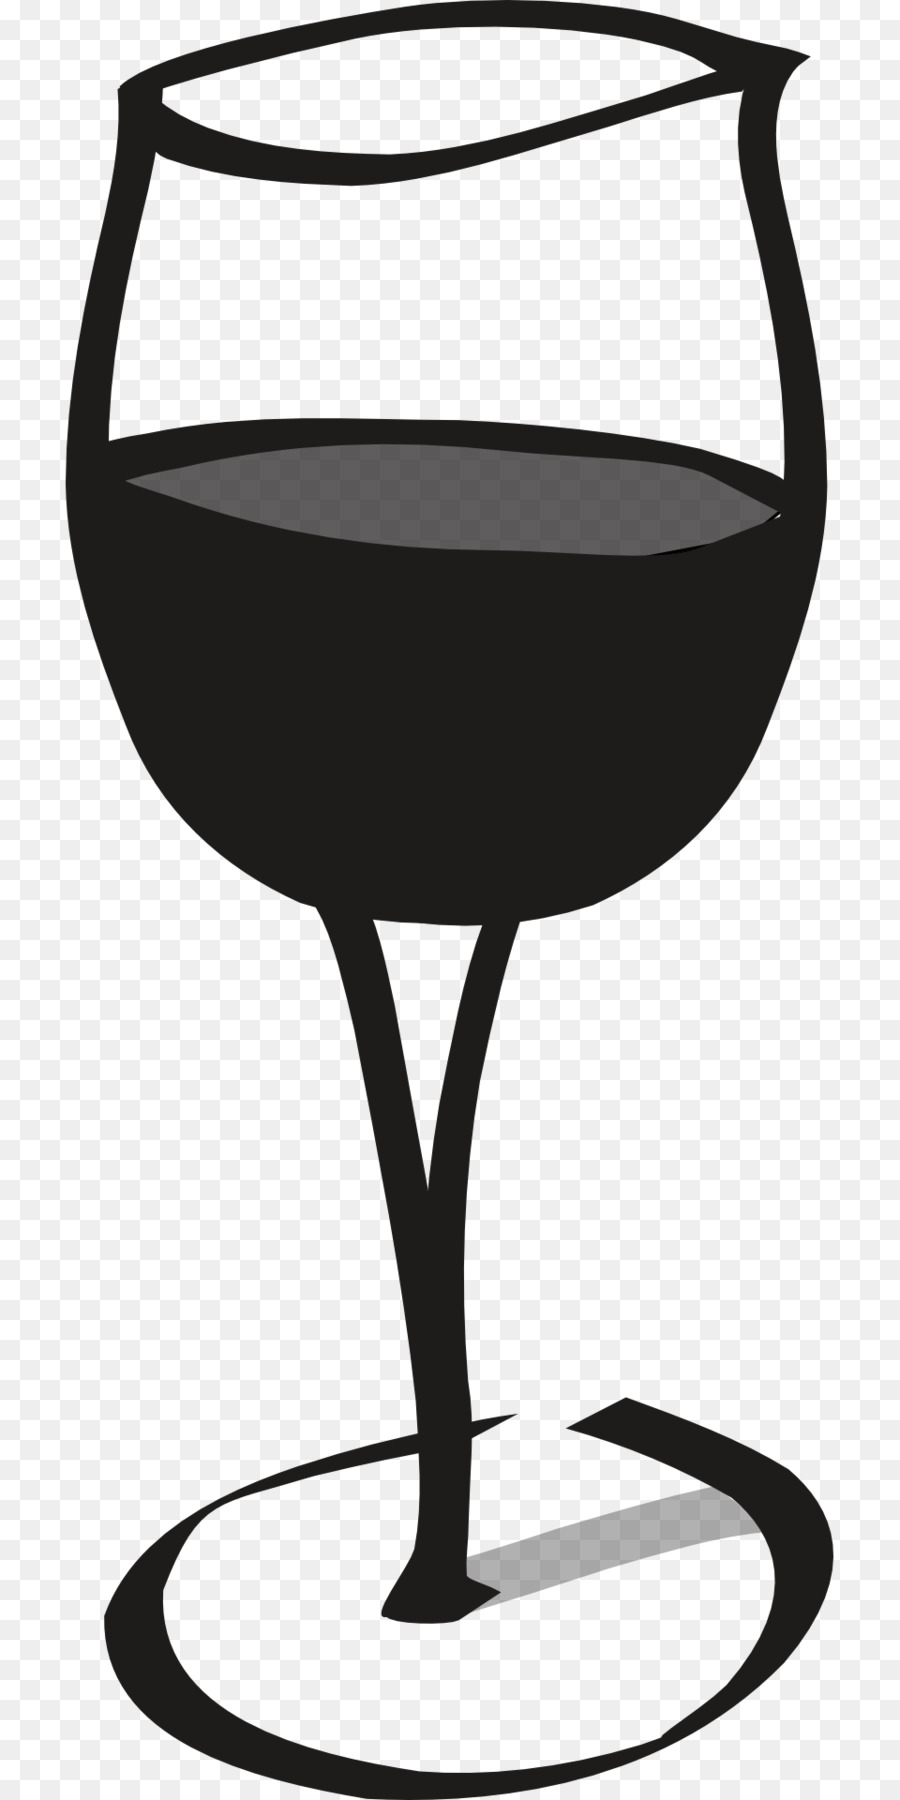 Clipart black and white drink glass png image library stock Champagne Bottle png download - 960*1920 - Free Transparent Wine png ... image library stock